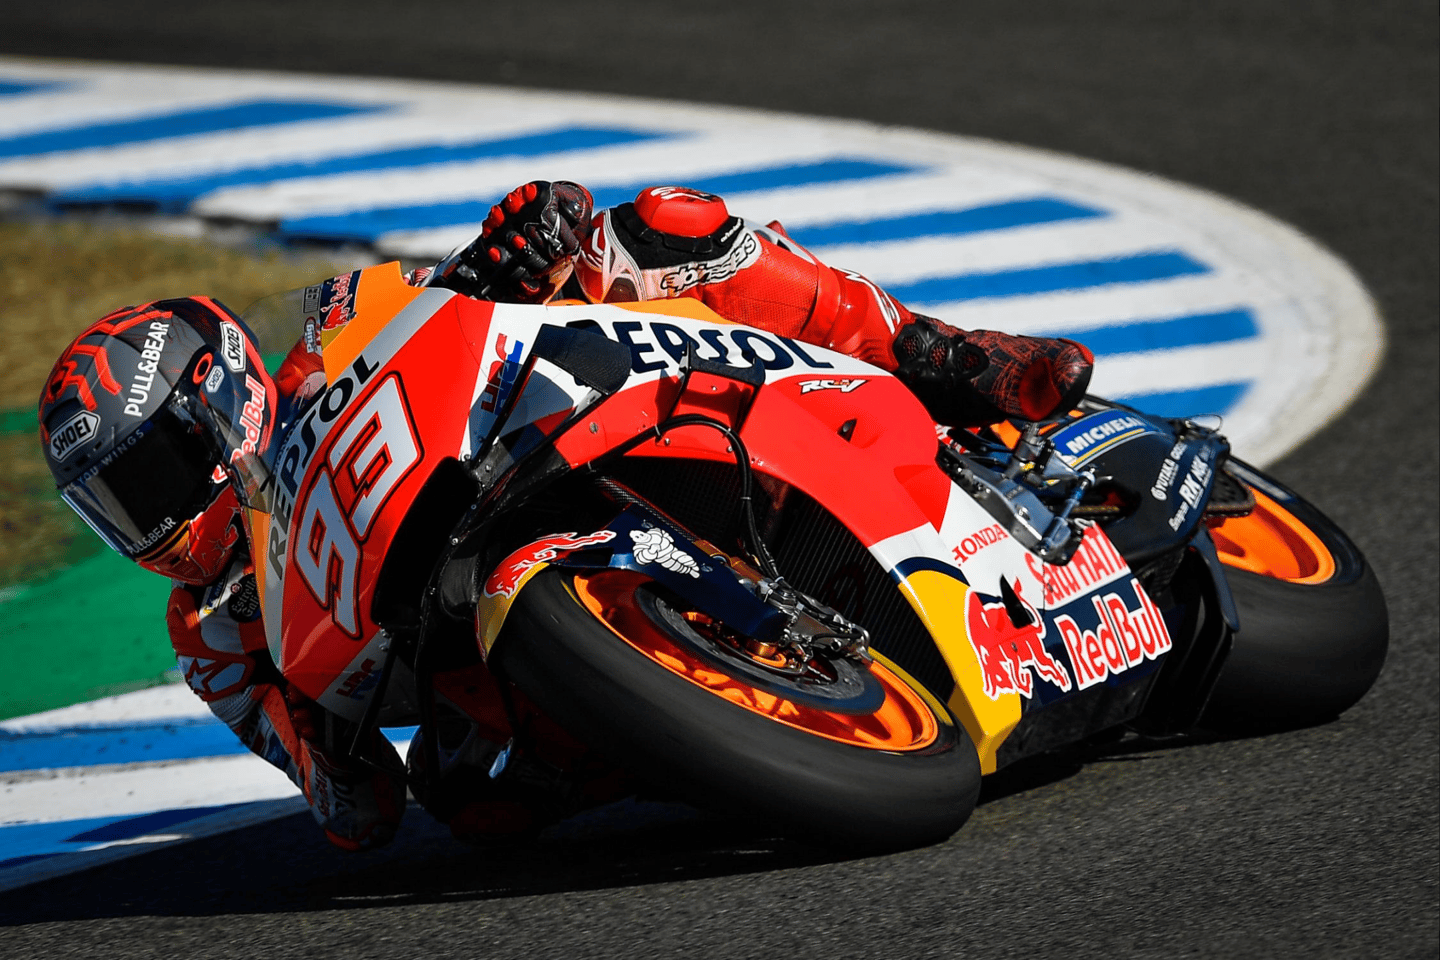 Spanish MotoGP champion Marc Marquez is planning to race this weekend after breaking his arm in a gnarly crash on Sunday